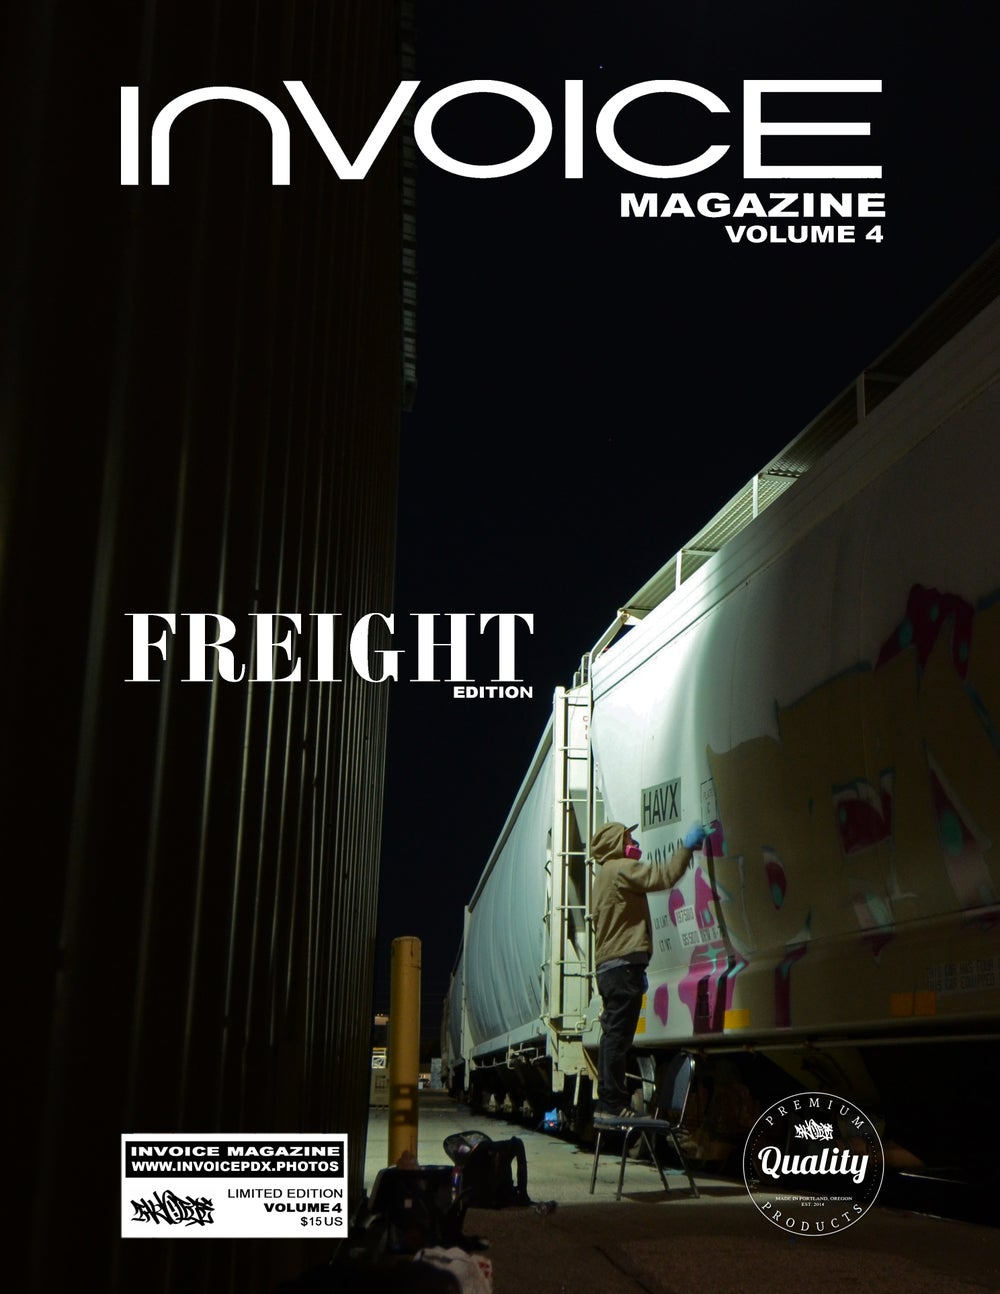 Image of Invoice Magazine: Volume 4